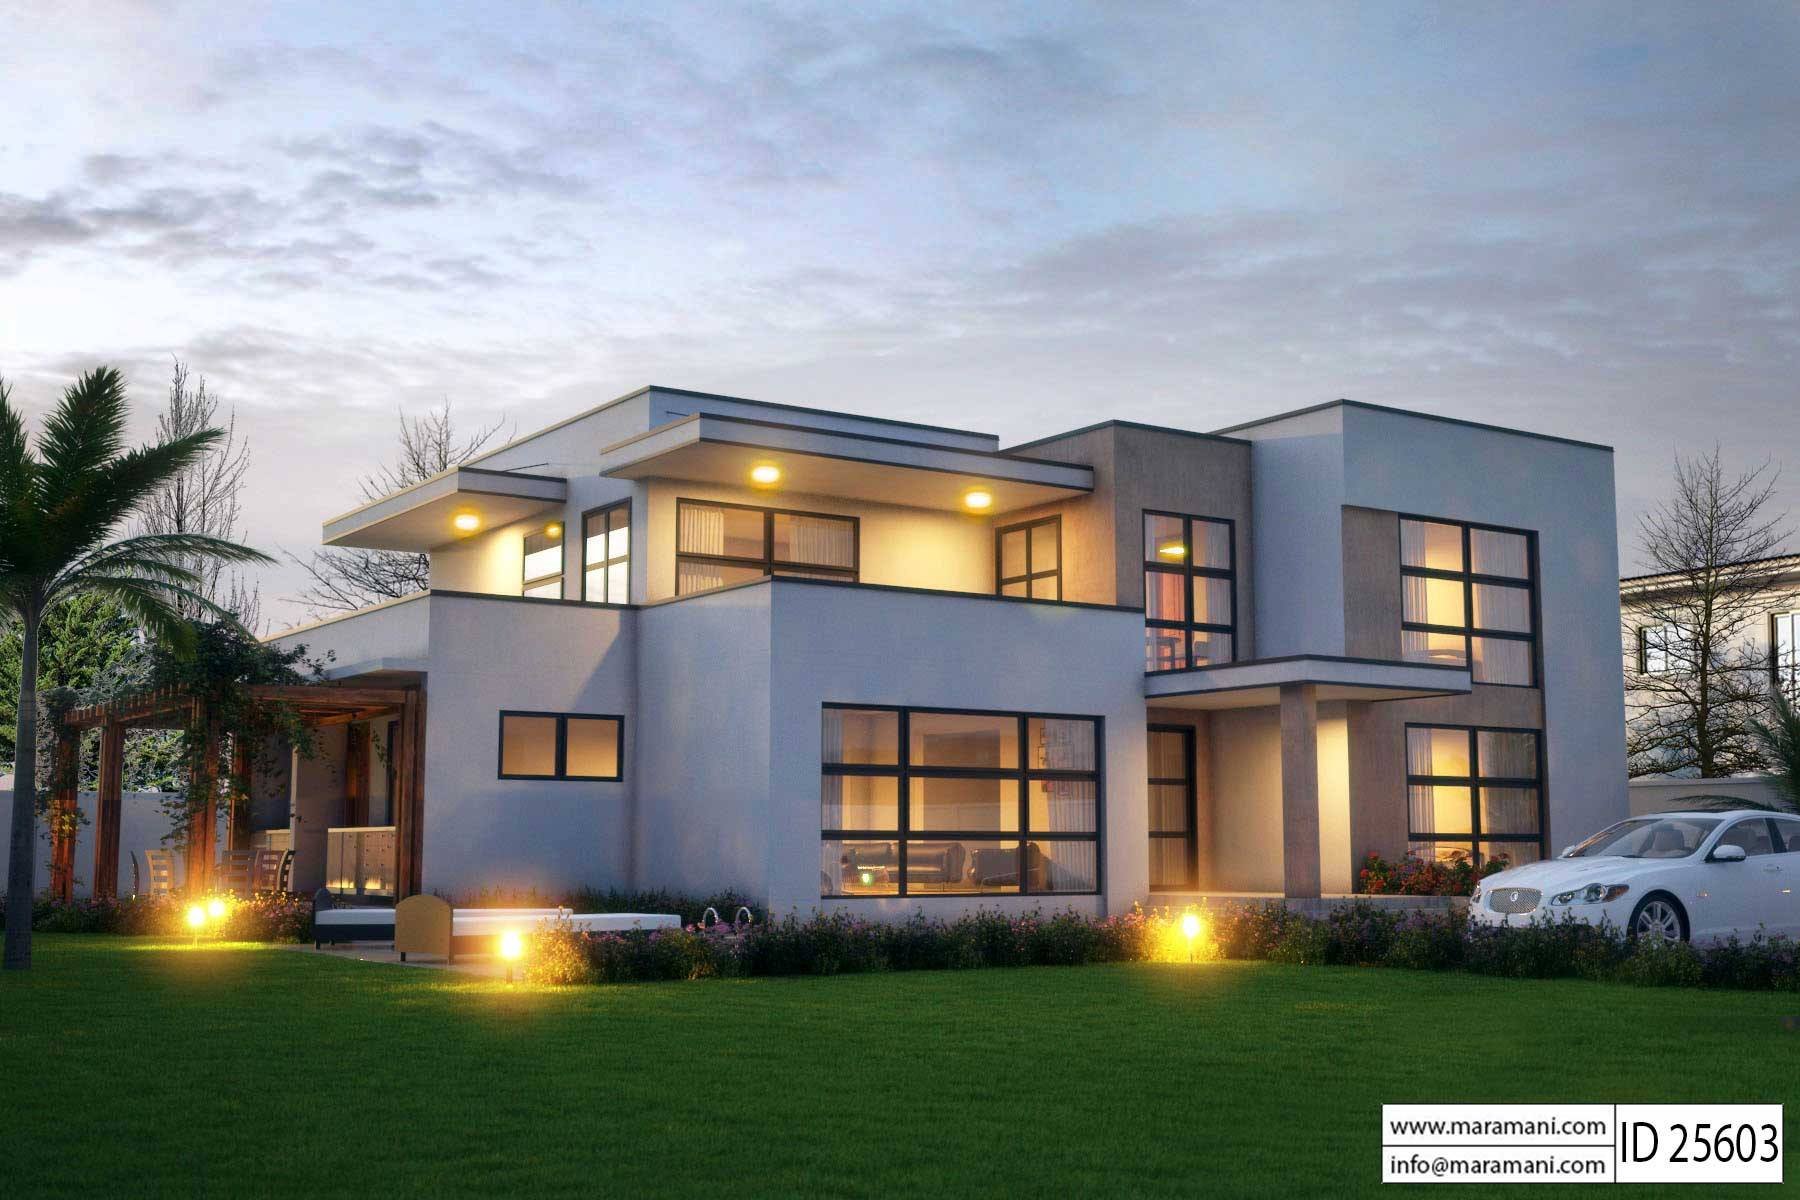 Modern 5 bedroom house design id 25603 floor plans by for Floor plans 5 bedroom house